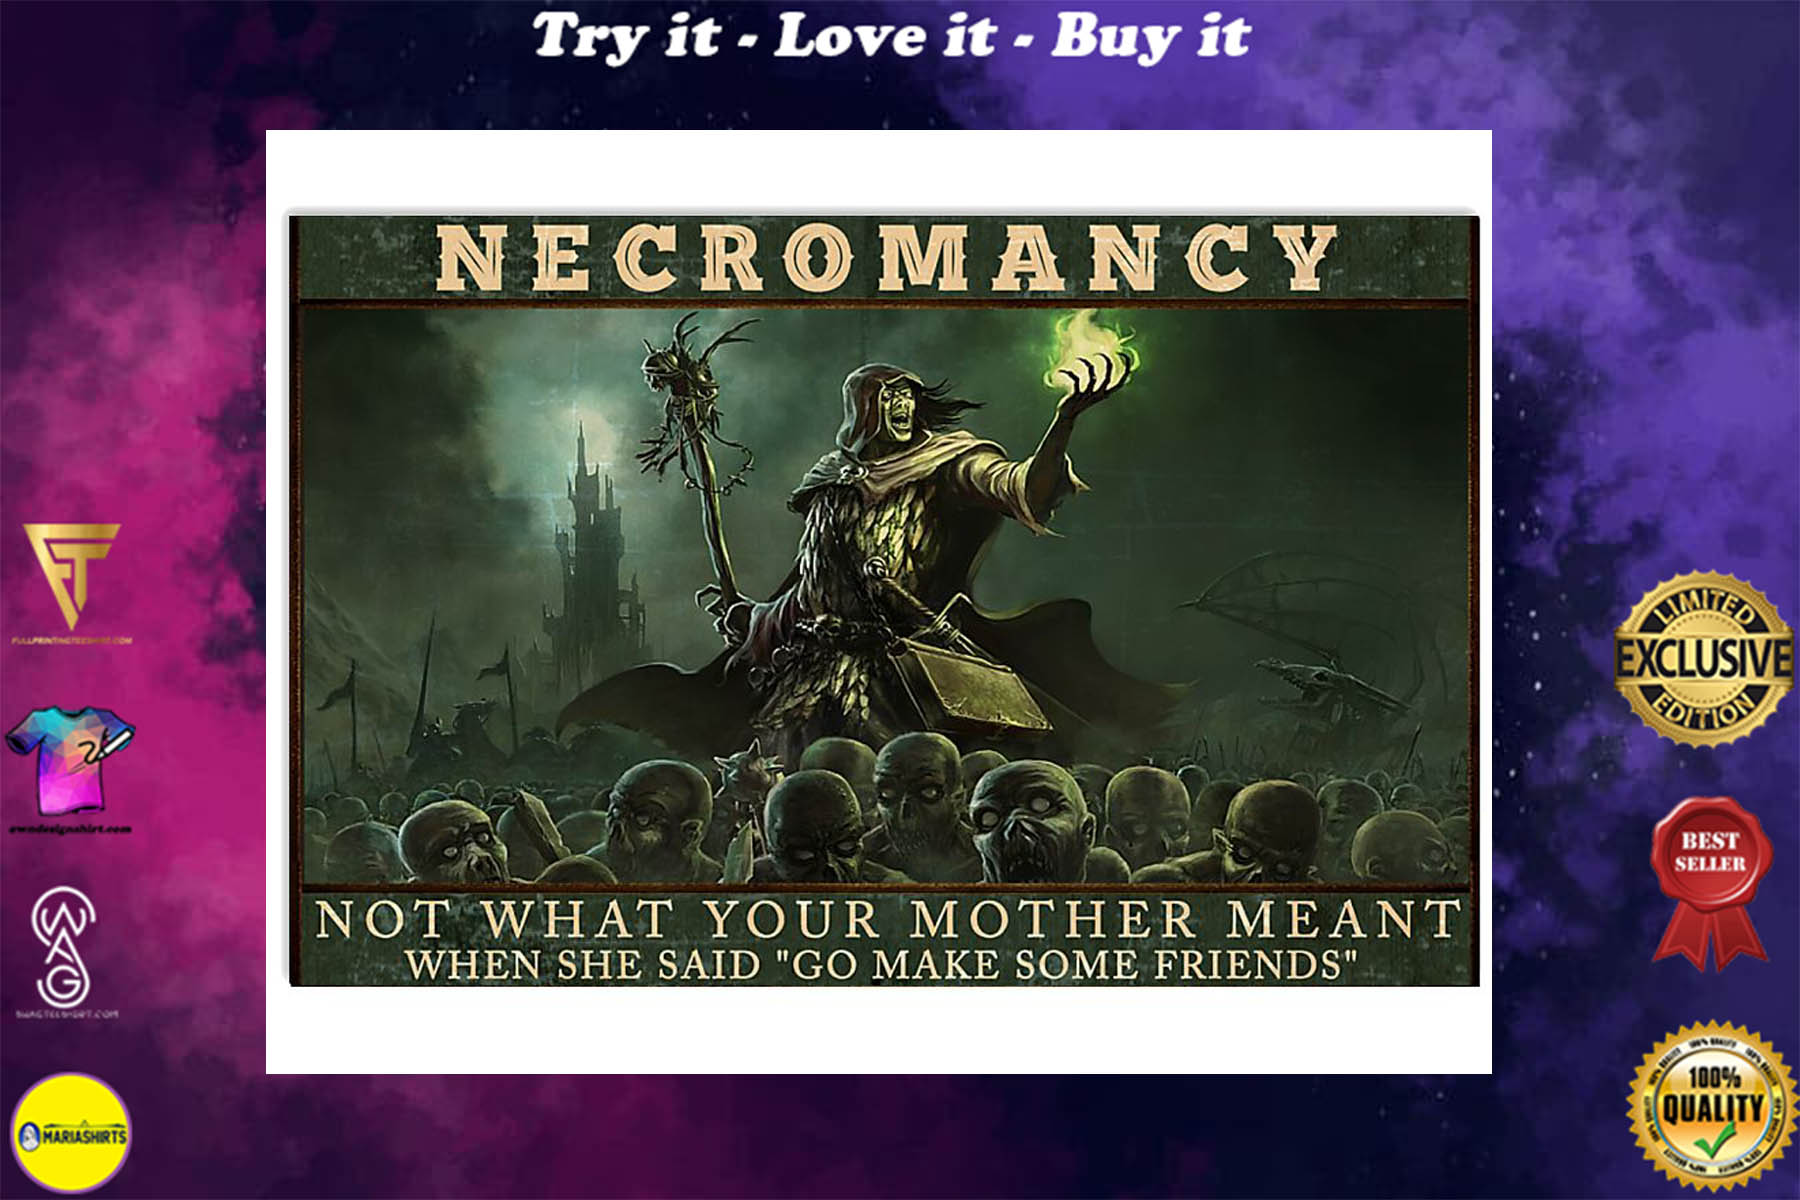 necromancy not what your mother meant when she said go make some friends poster